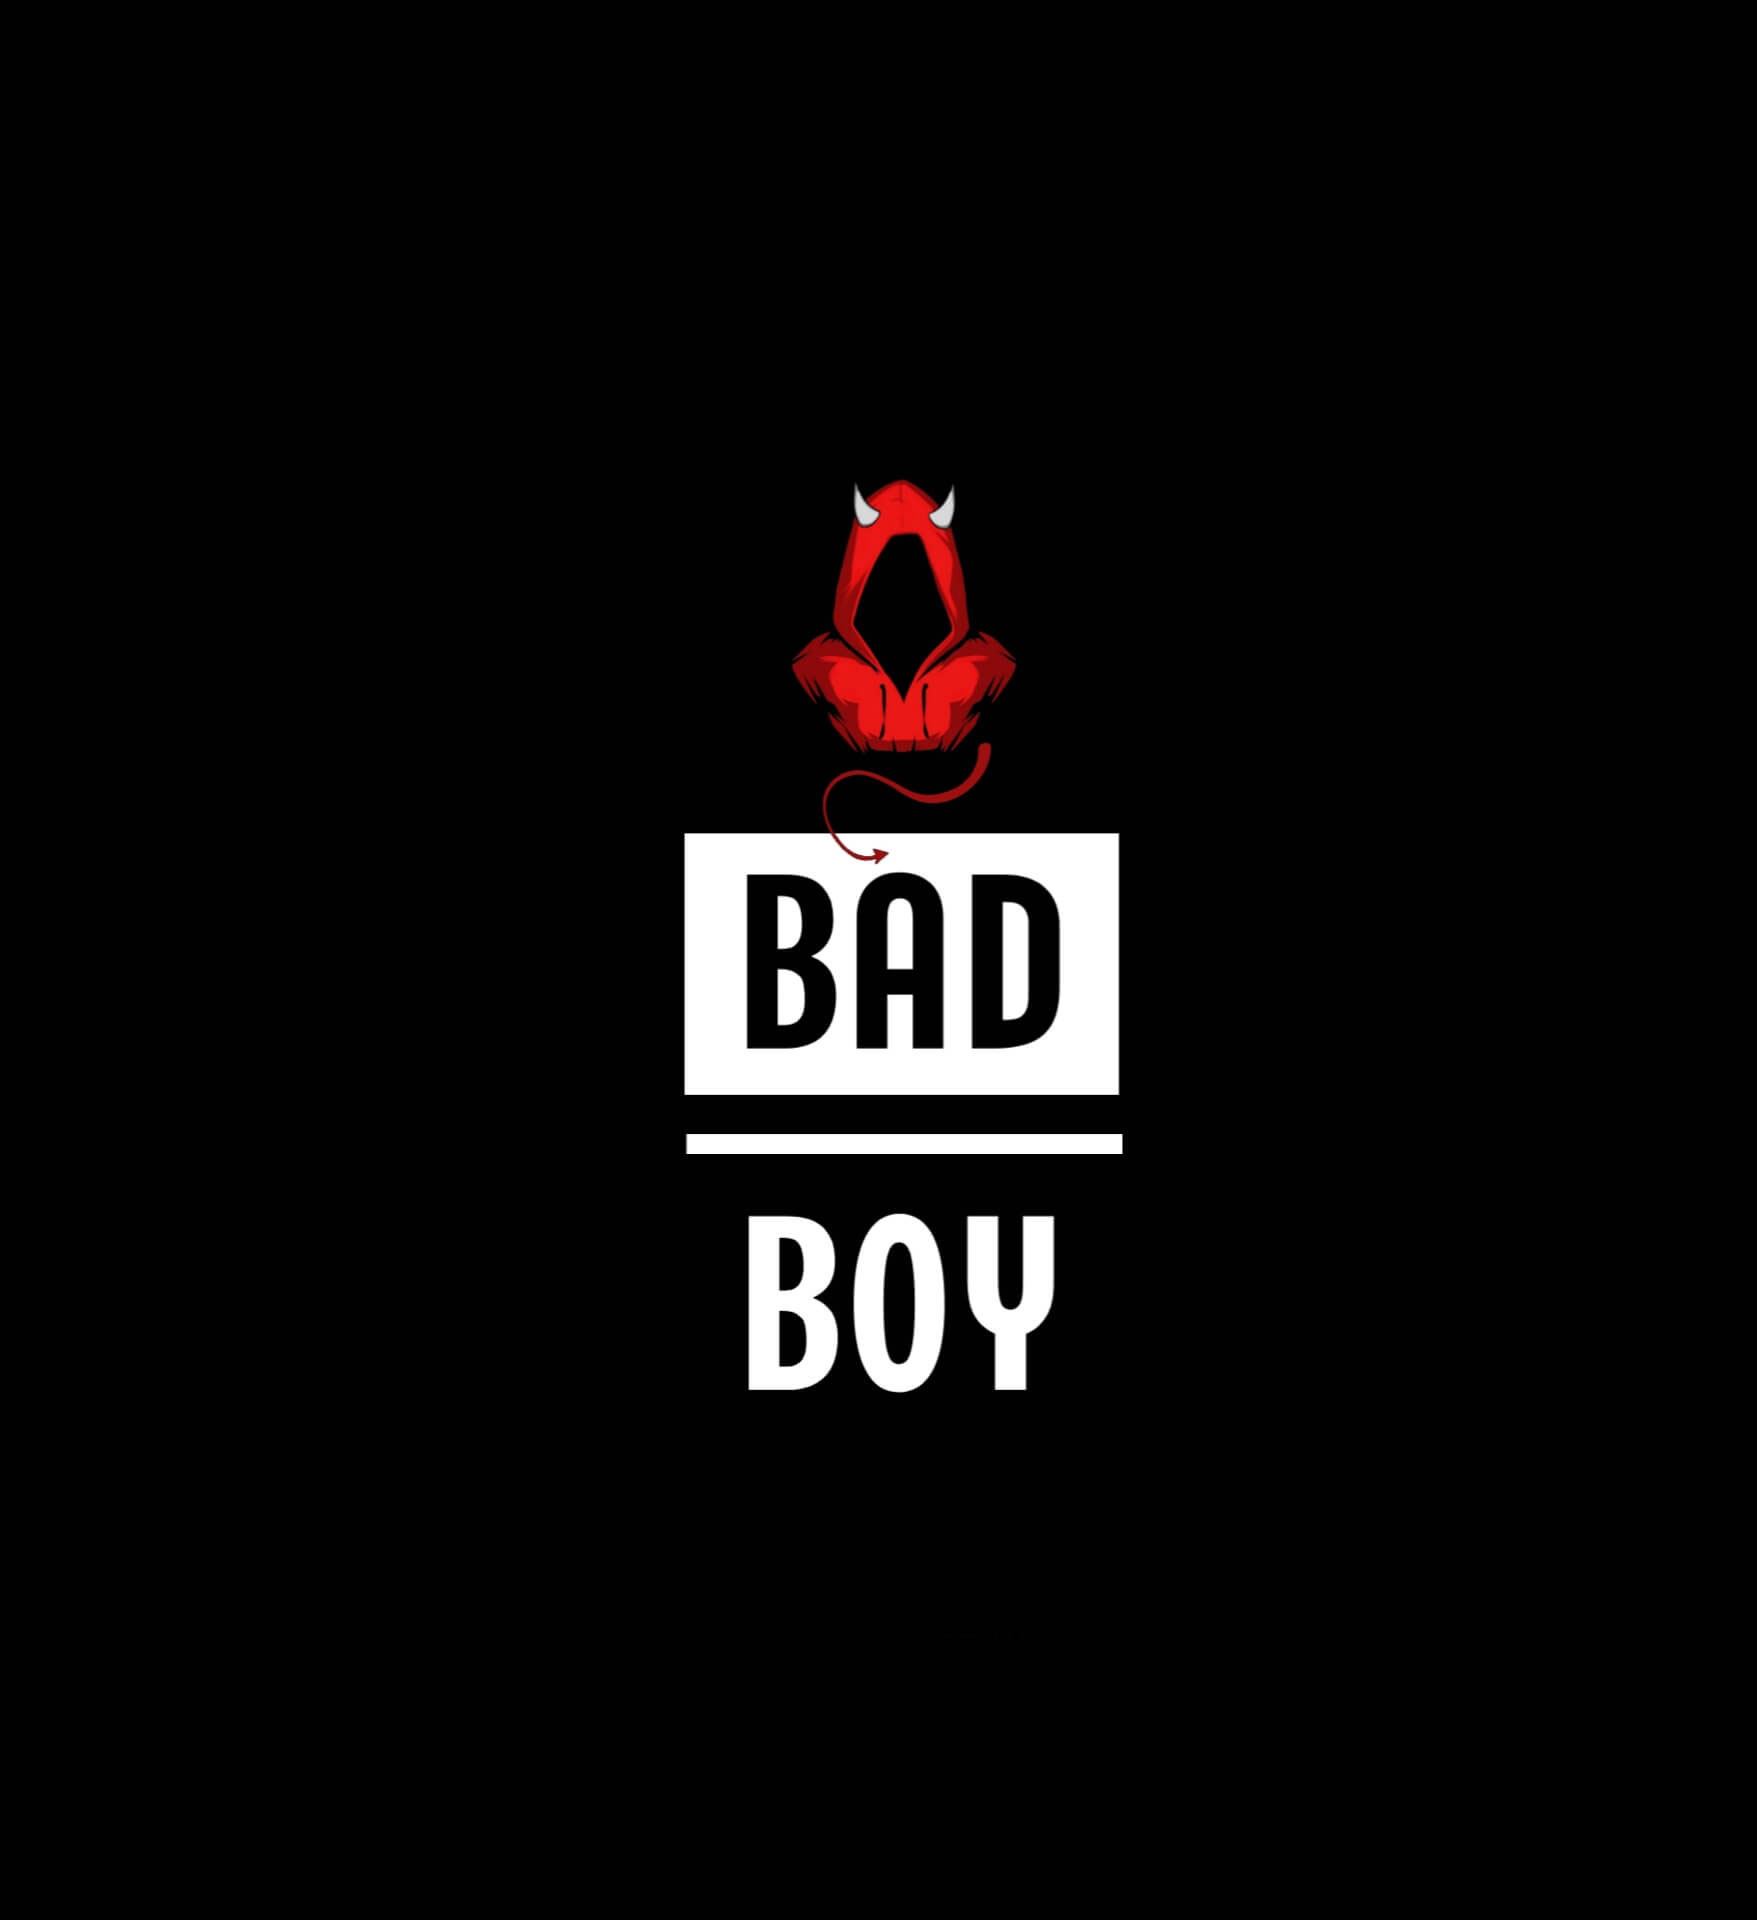 Attitude Dp For Boy Images photo free download